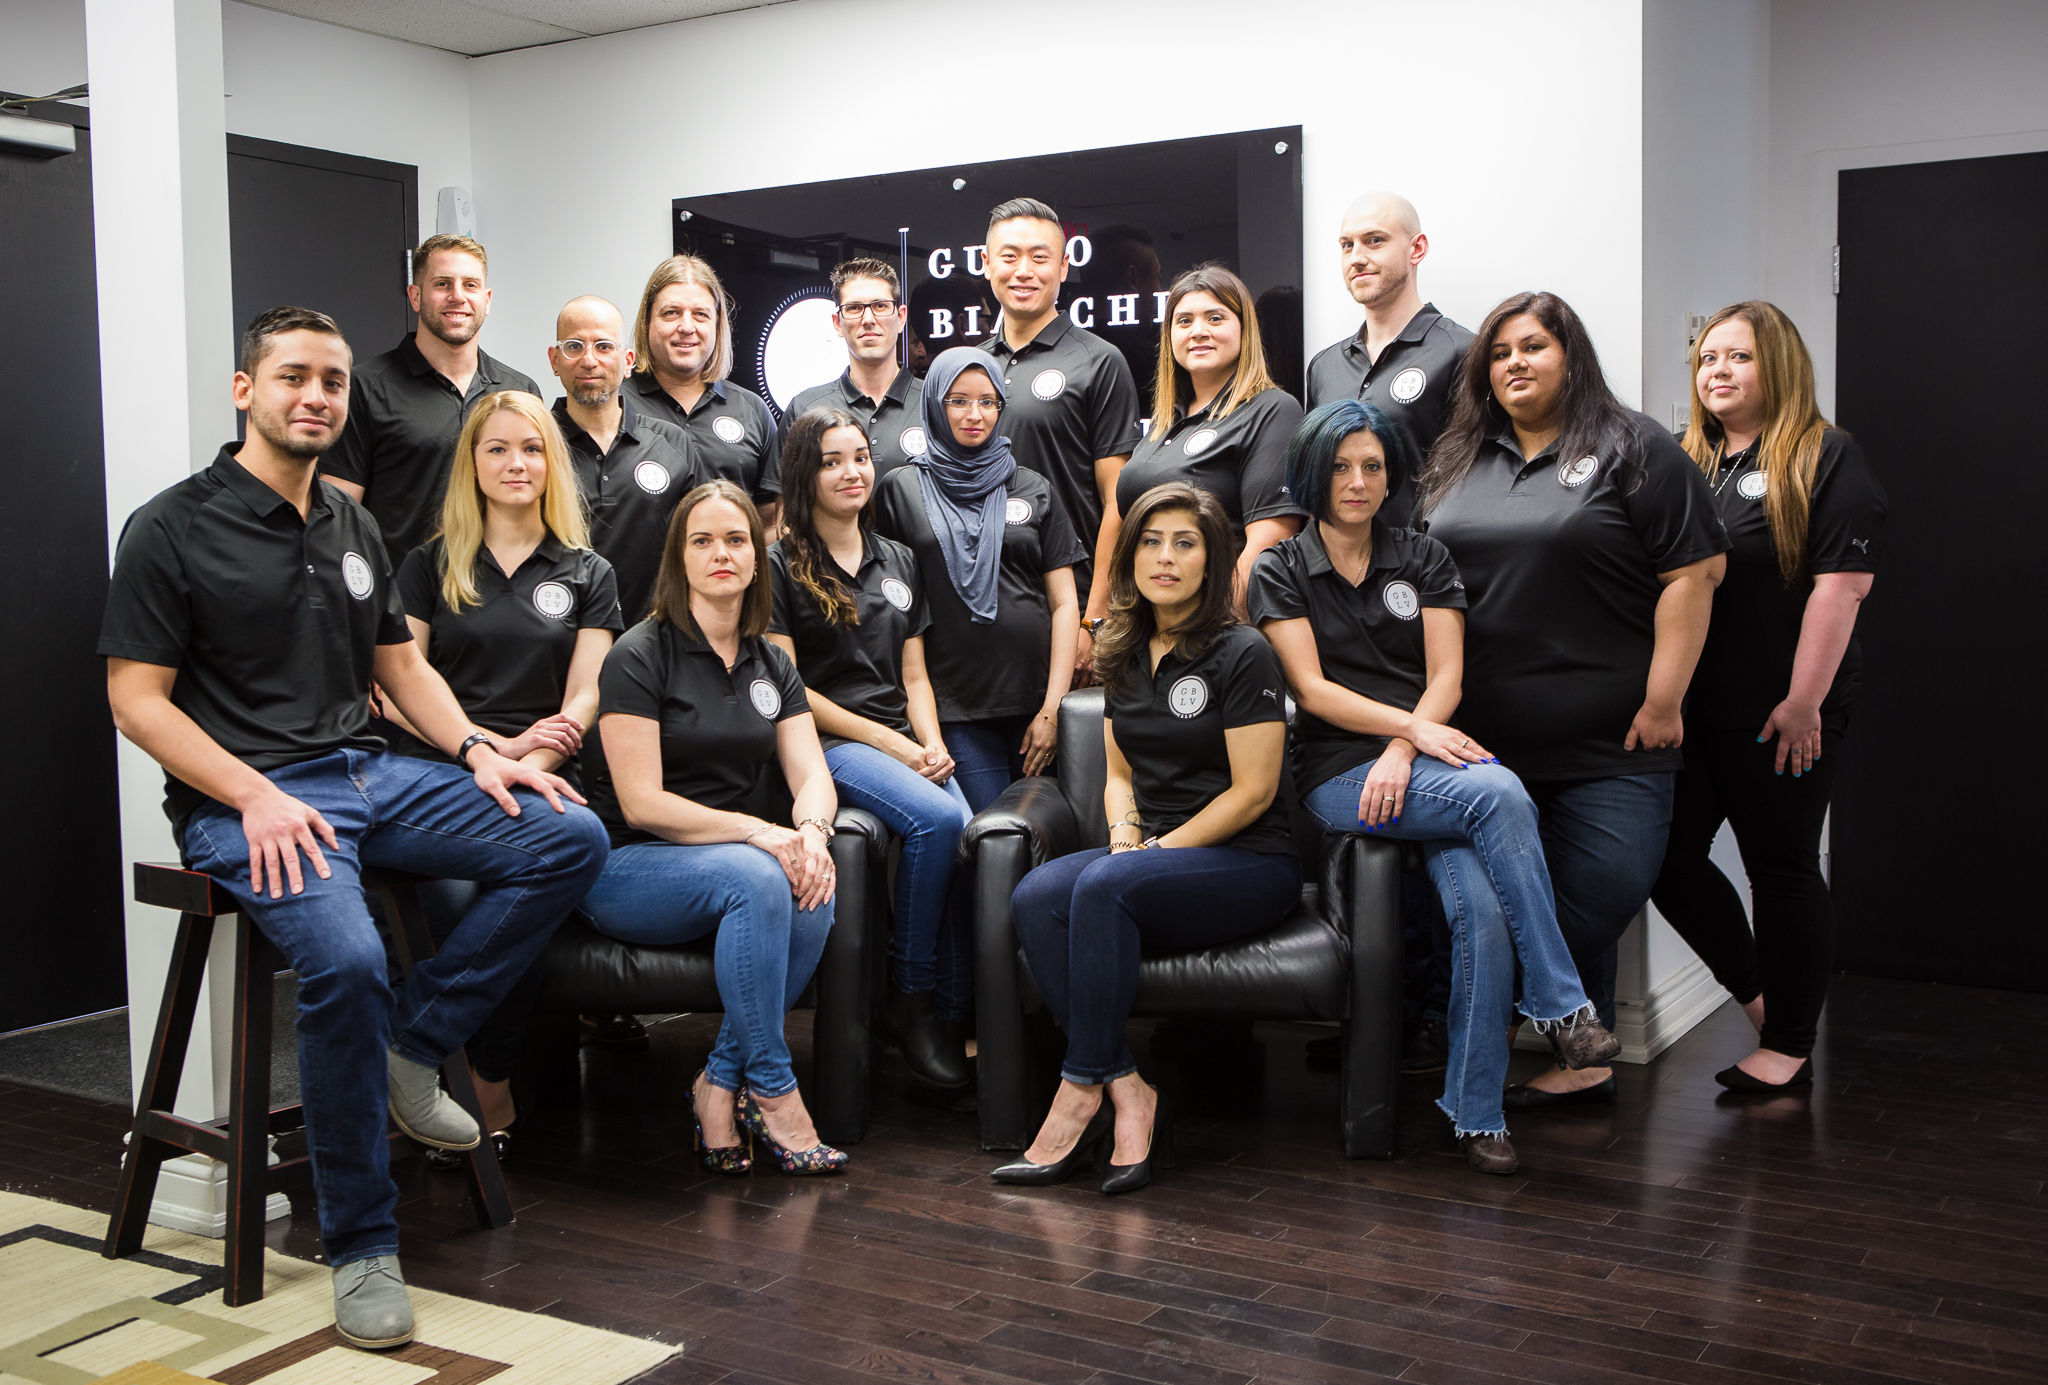 Meet the team: Best Personal Injury Defense Lawyers in Toronto